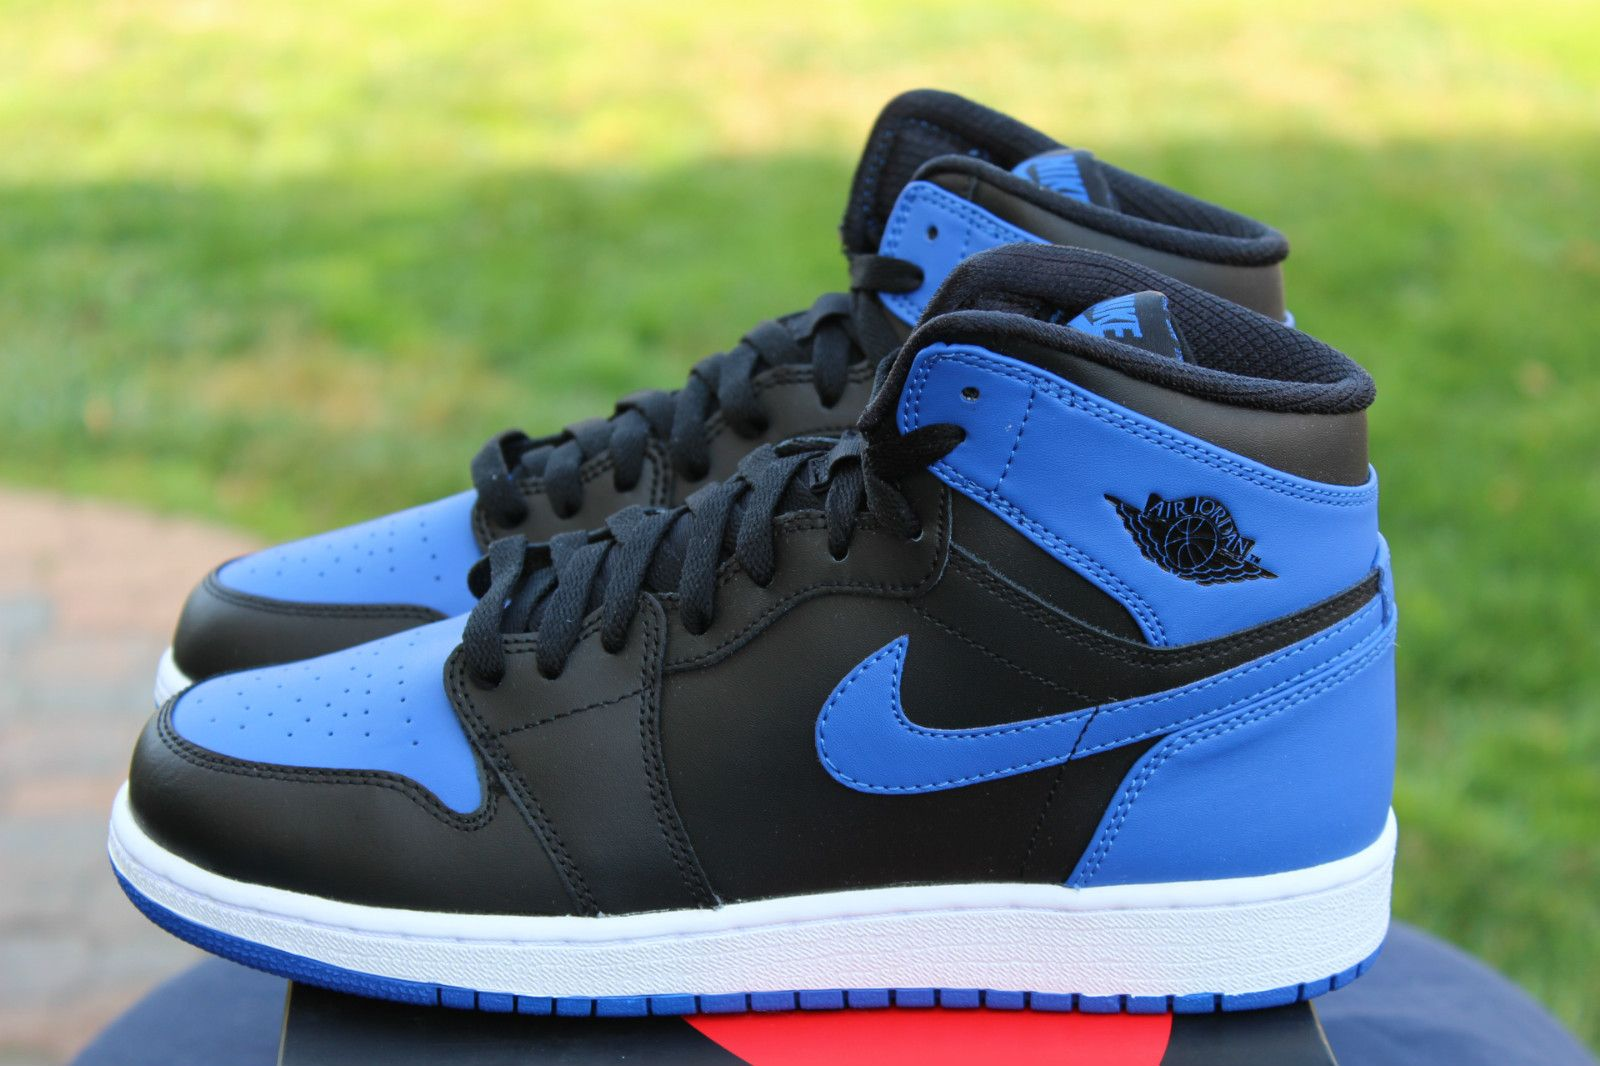 royal blue air jordan shoes